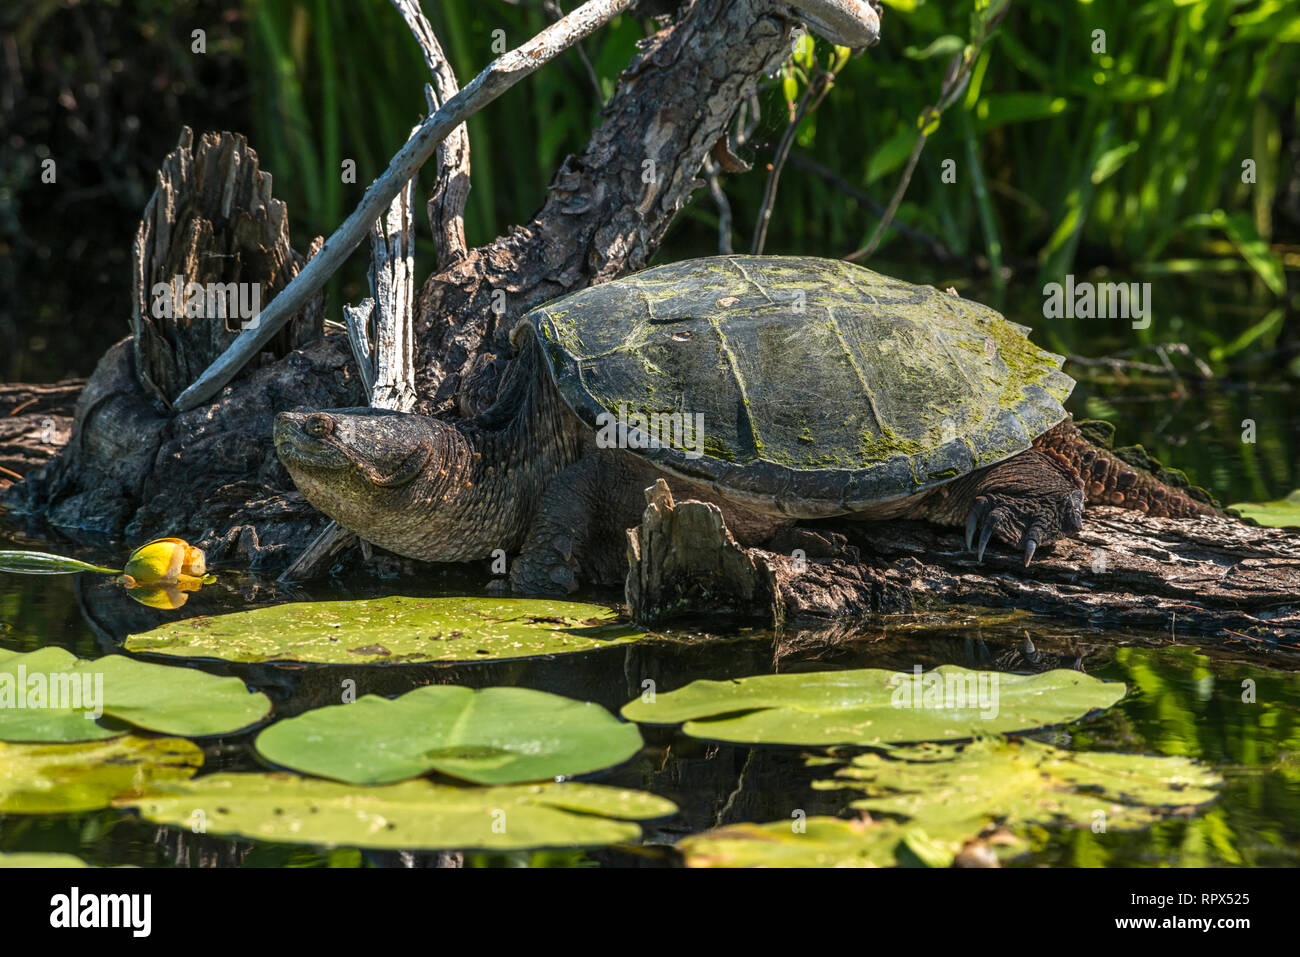 zoology / animals, reptile (reptilia), Common Snapping Turtle (Chelydra serpentina) basking on a log i, Additional-Rights-Clearance-Info-Not-Available Stock Photo